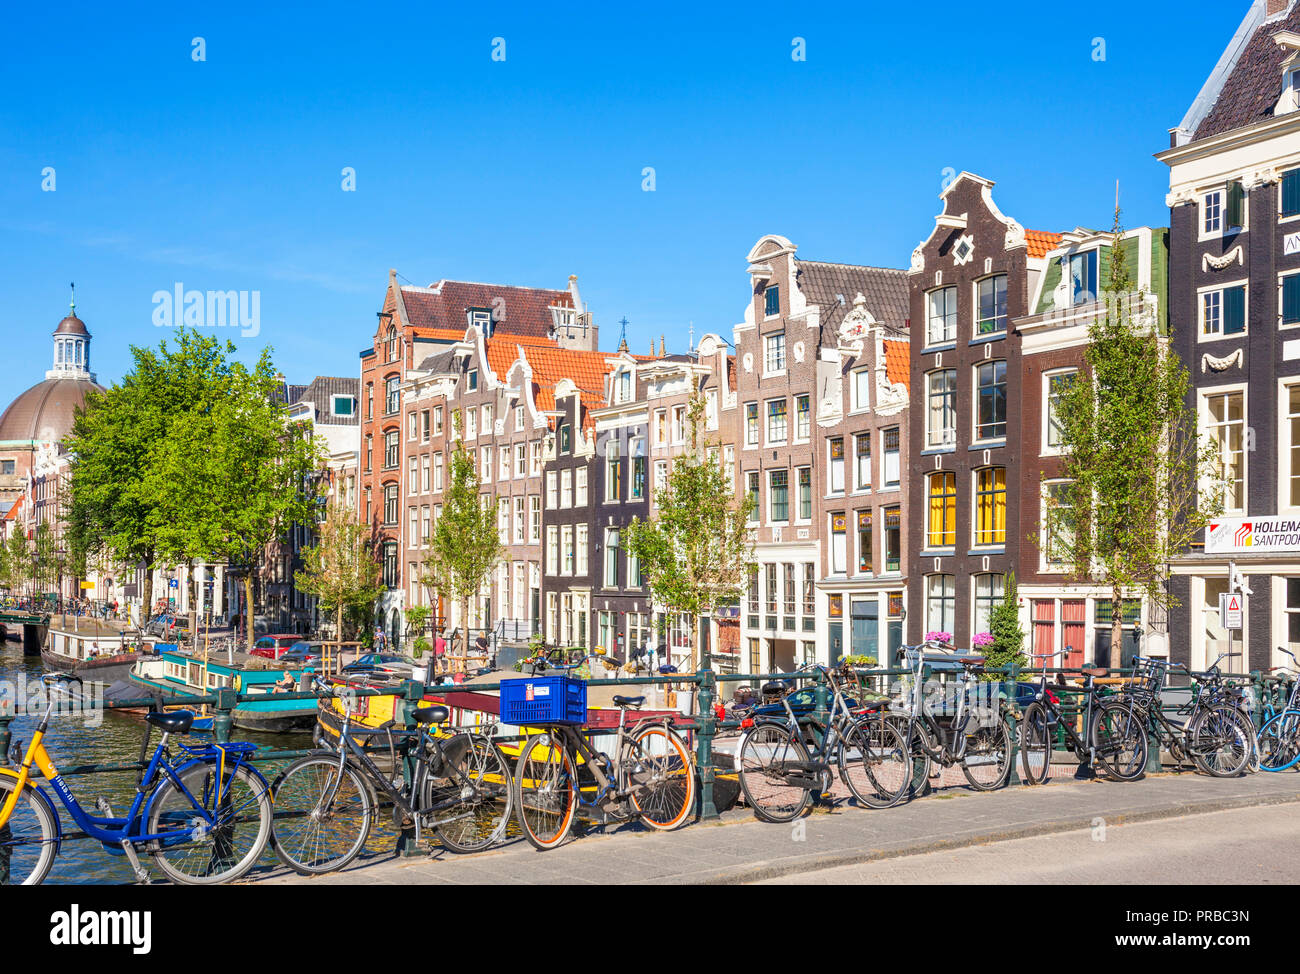 Amsterdam houses and bikes on Singel an Amsterdam canal Blauwburgwal bridge over Singel canal amsterdam bicycle propped against railings Amsterdam EU - Stock Image